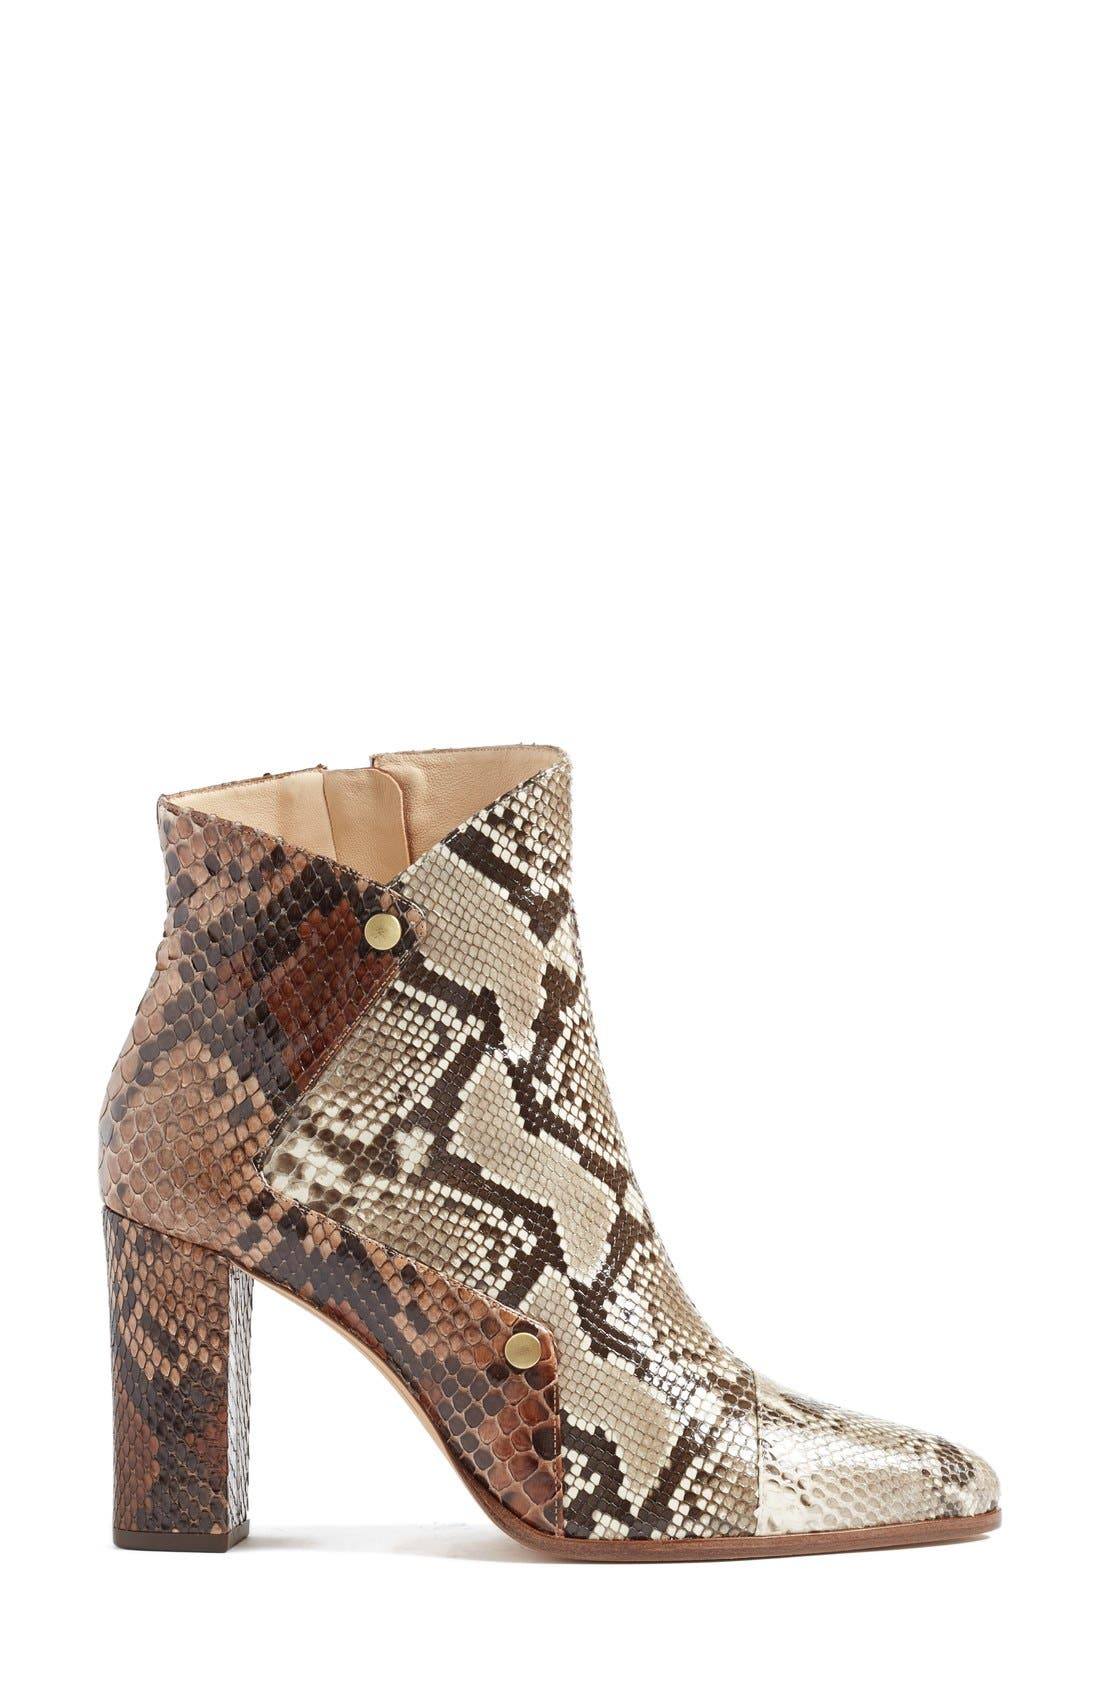 'Kendal' Genuine Python Skin Pointy Toe Bootie,                             Alternate thumbnail 3, color,                             250